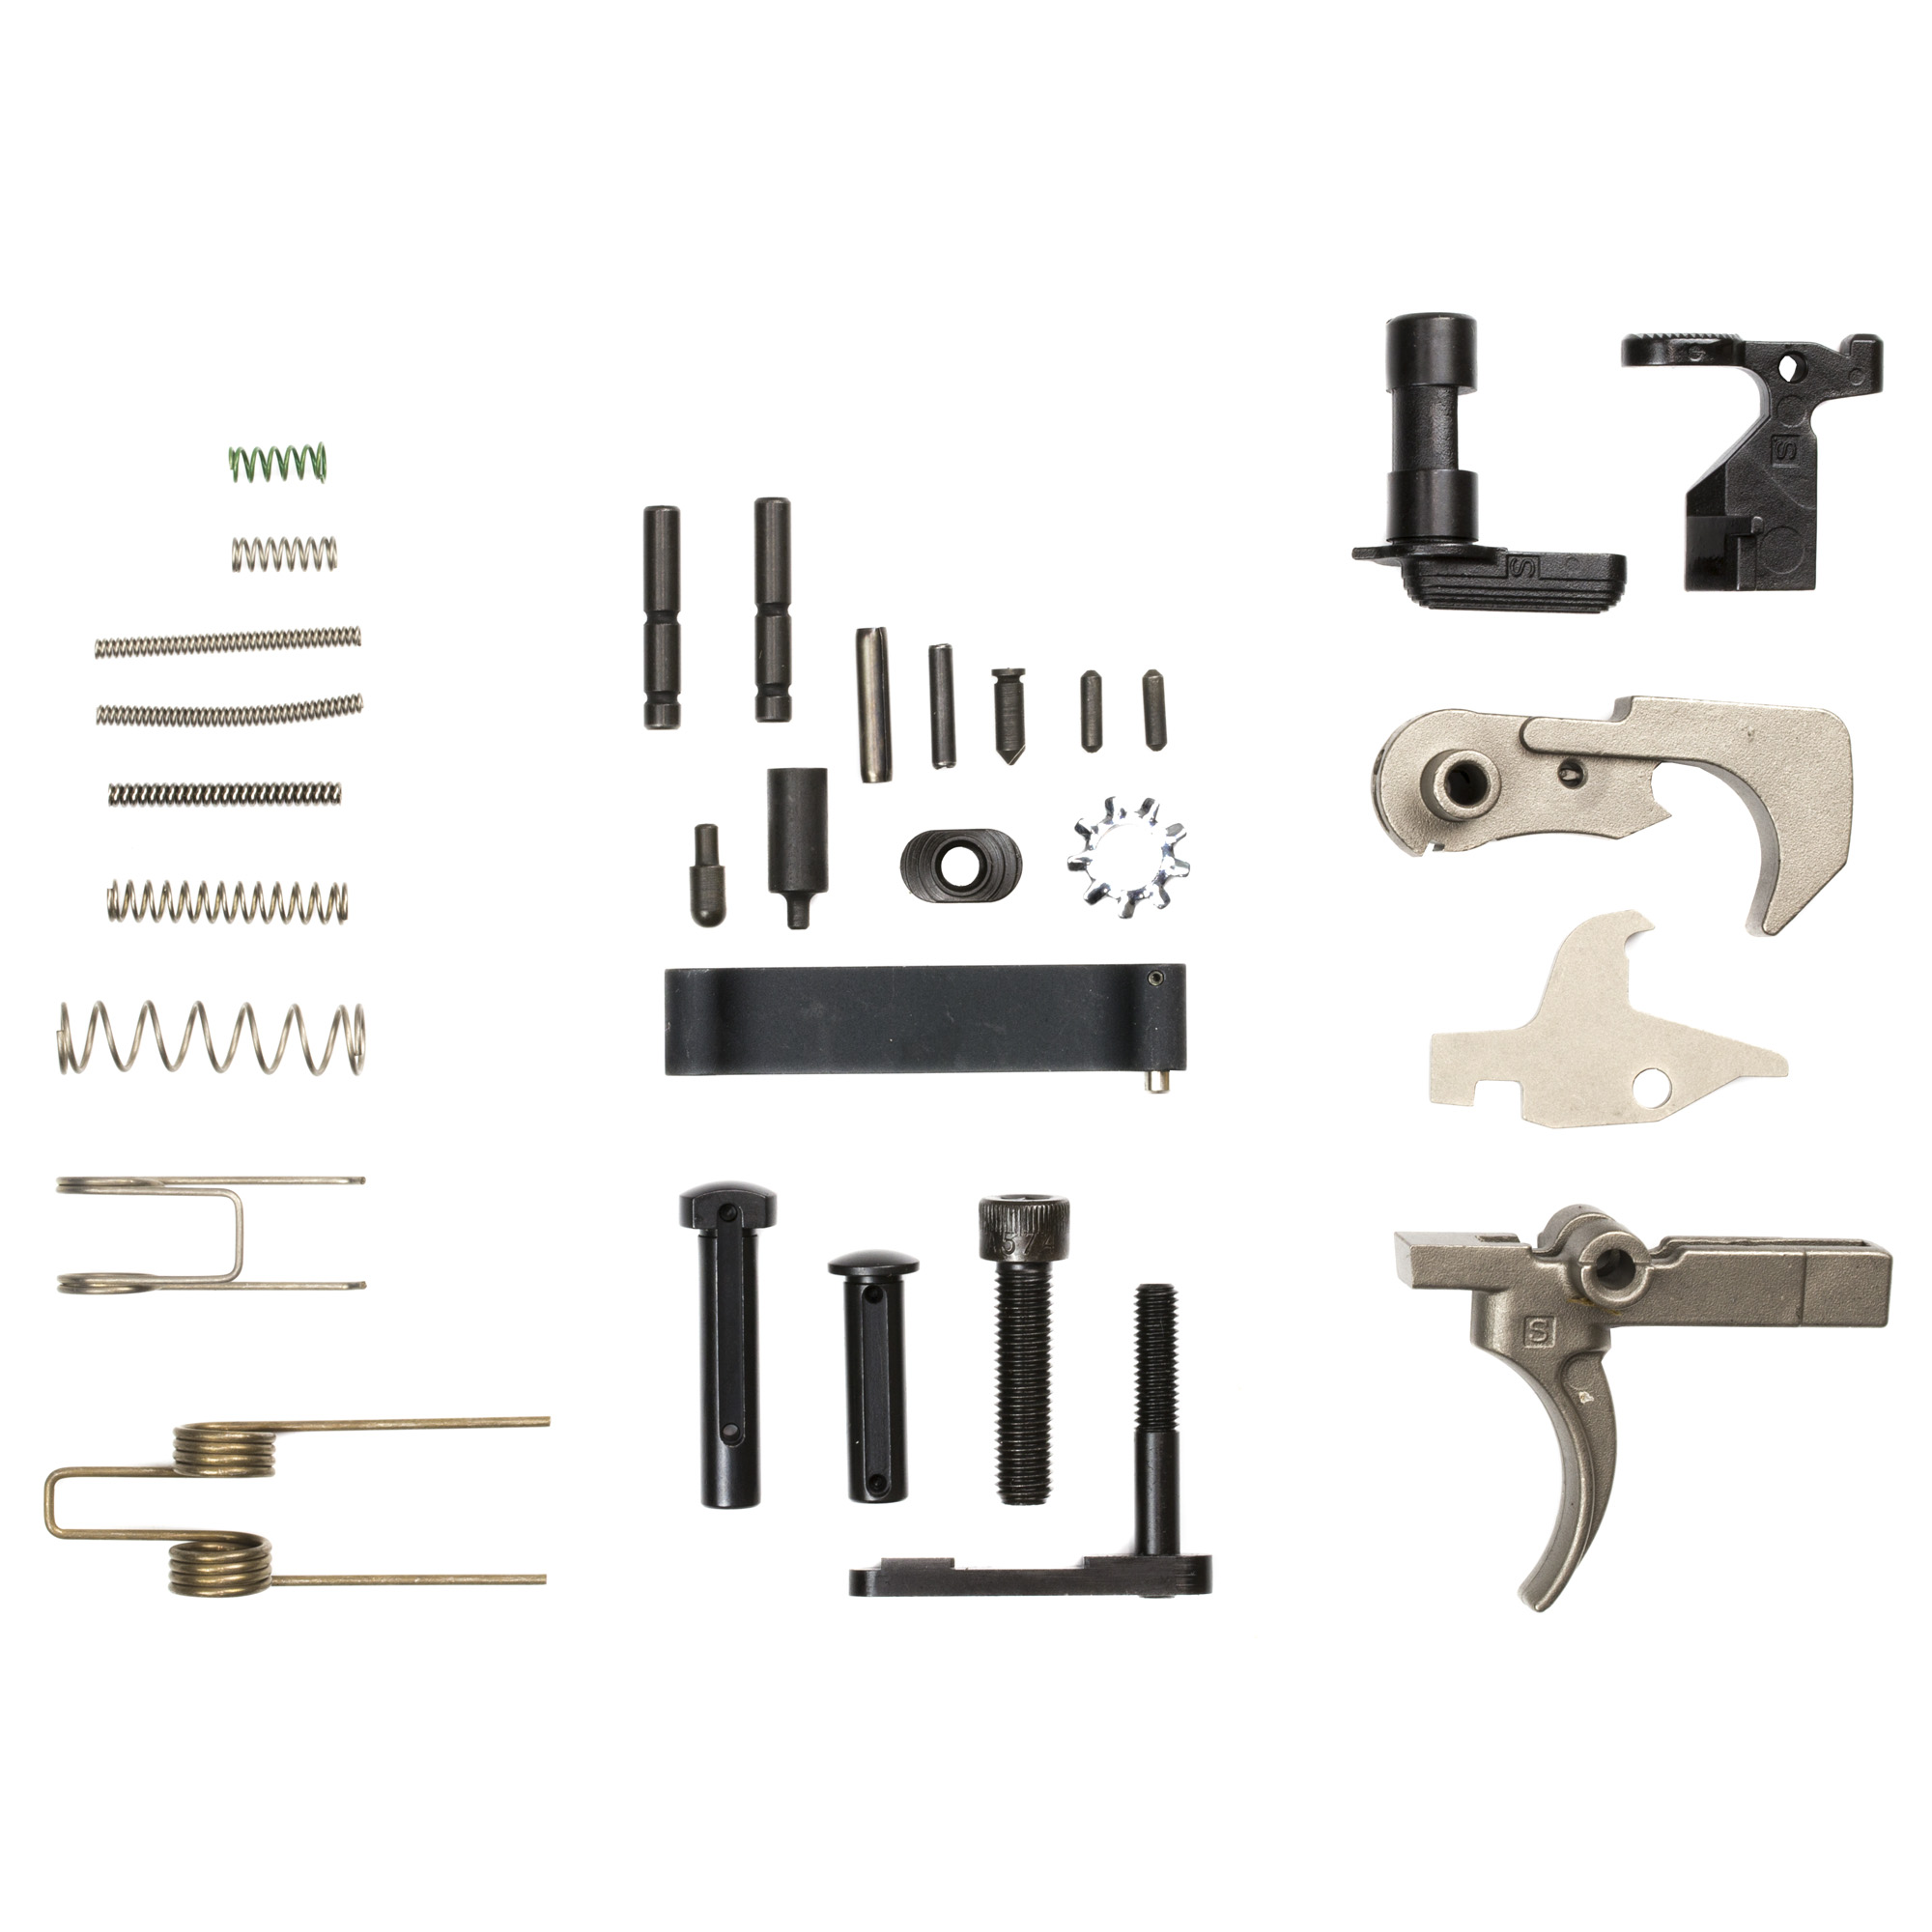 """AR-15 Lower Parts Kit with Nib-X coated Hammer"""" Trigger and Disconnect"""" Nitromet coated Bolt Catch"""" Mag Catch"""" Mag Catch Button"""" Safety Selector"""" Front Pivot Pin and Rear Takedown Pin."""